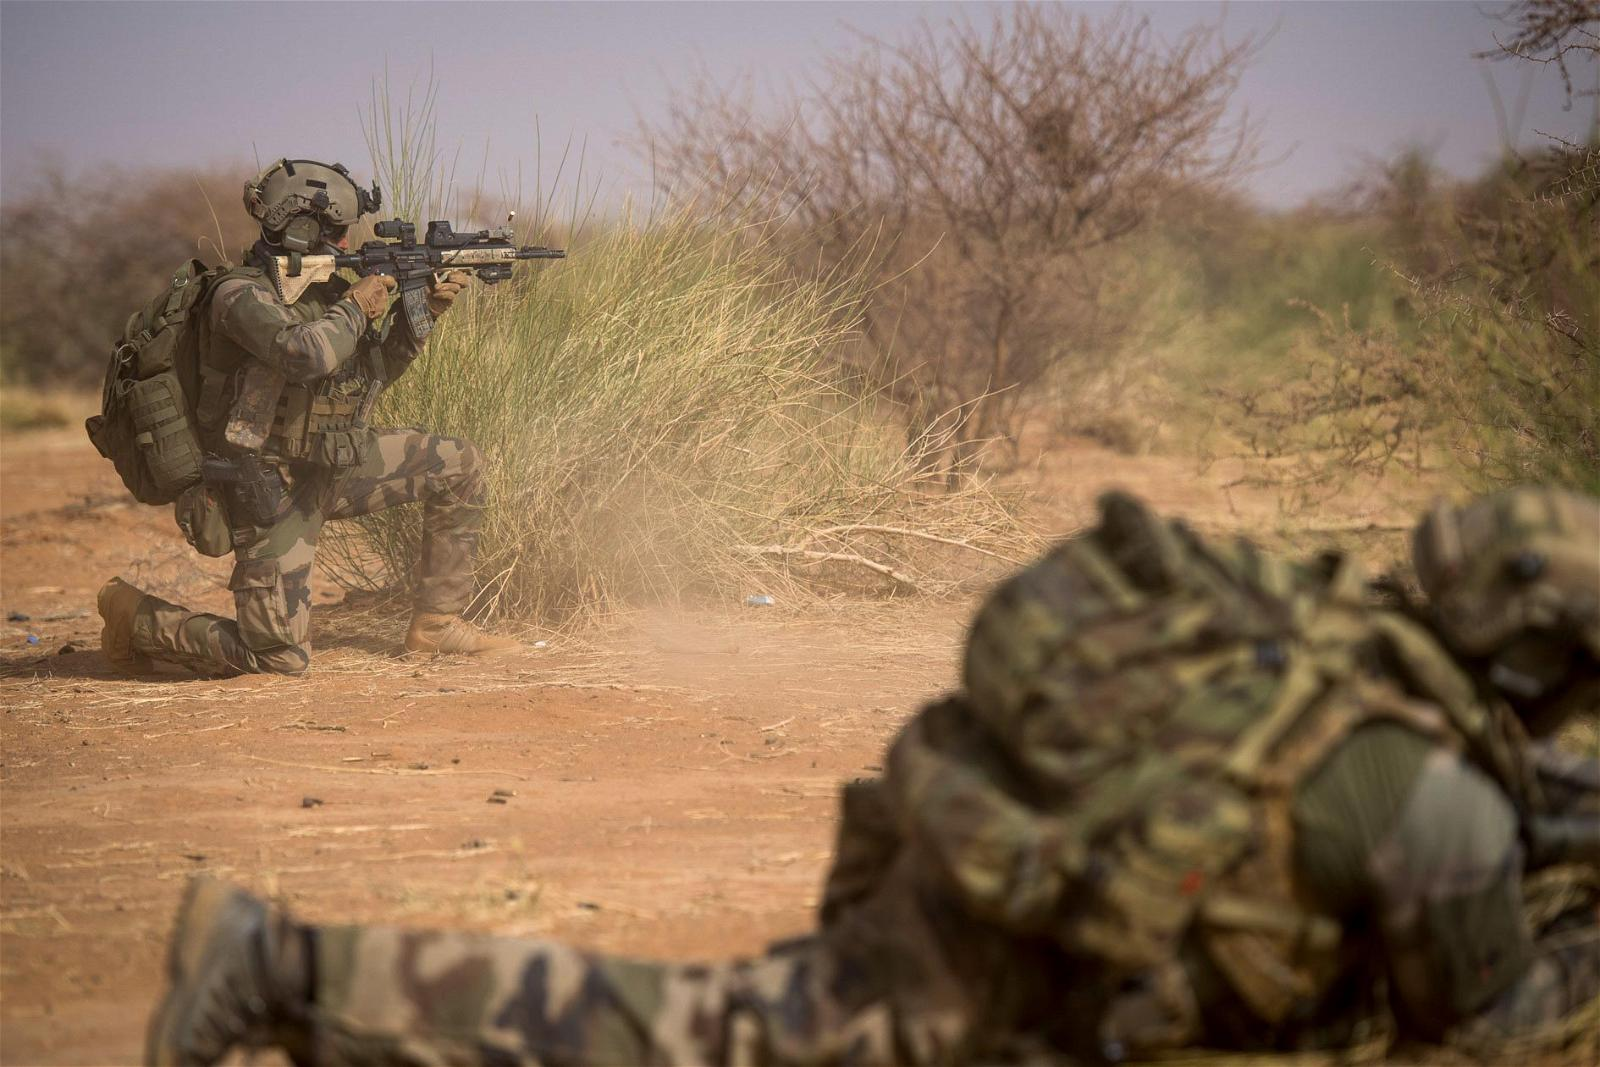 8 soldiers killed, 5 others injured in Mali